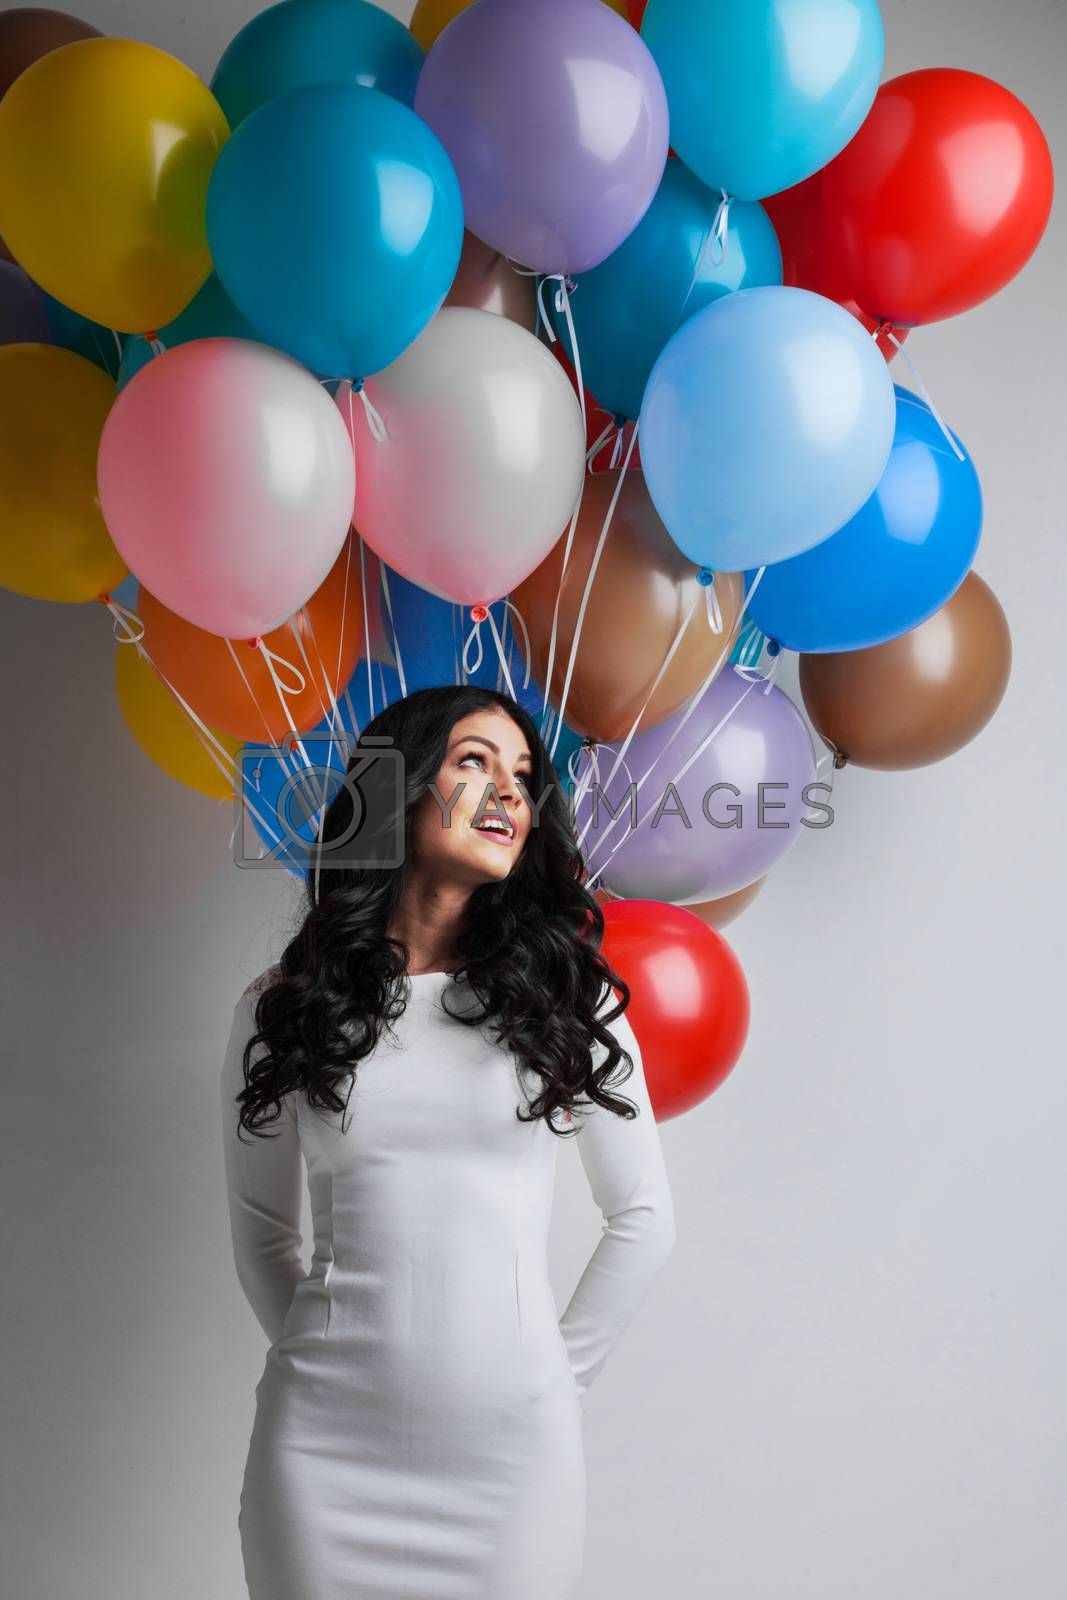 Young pretty woman in white dress with colored balloons on white background with copy space for text